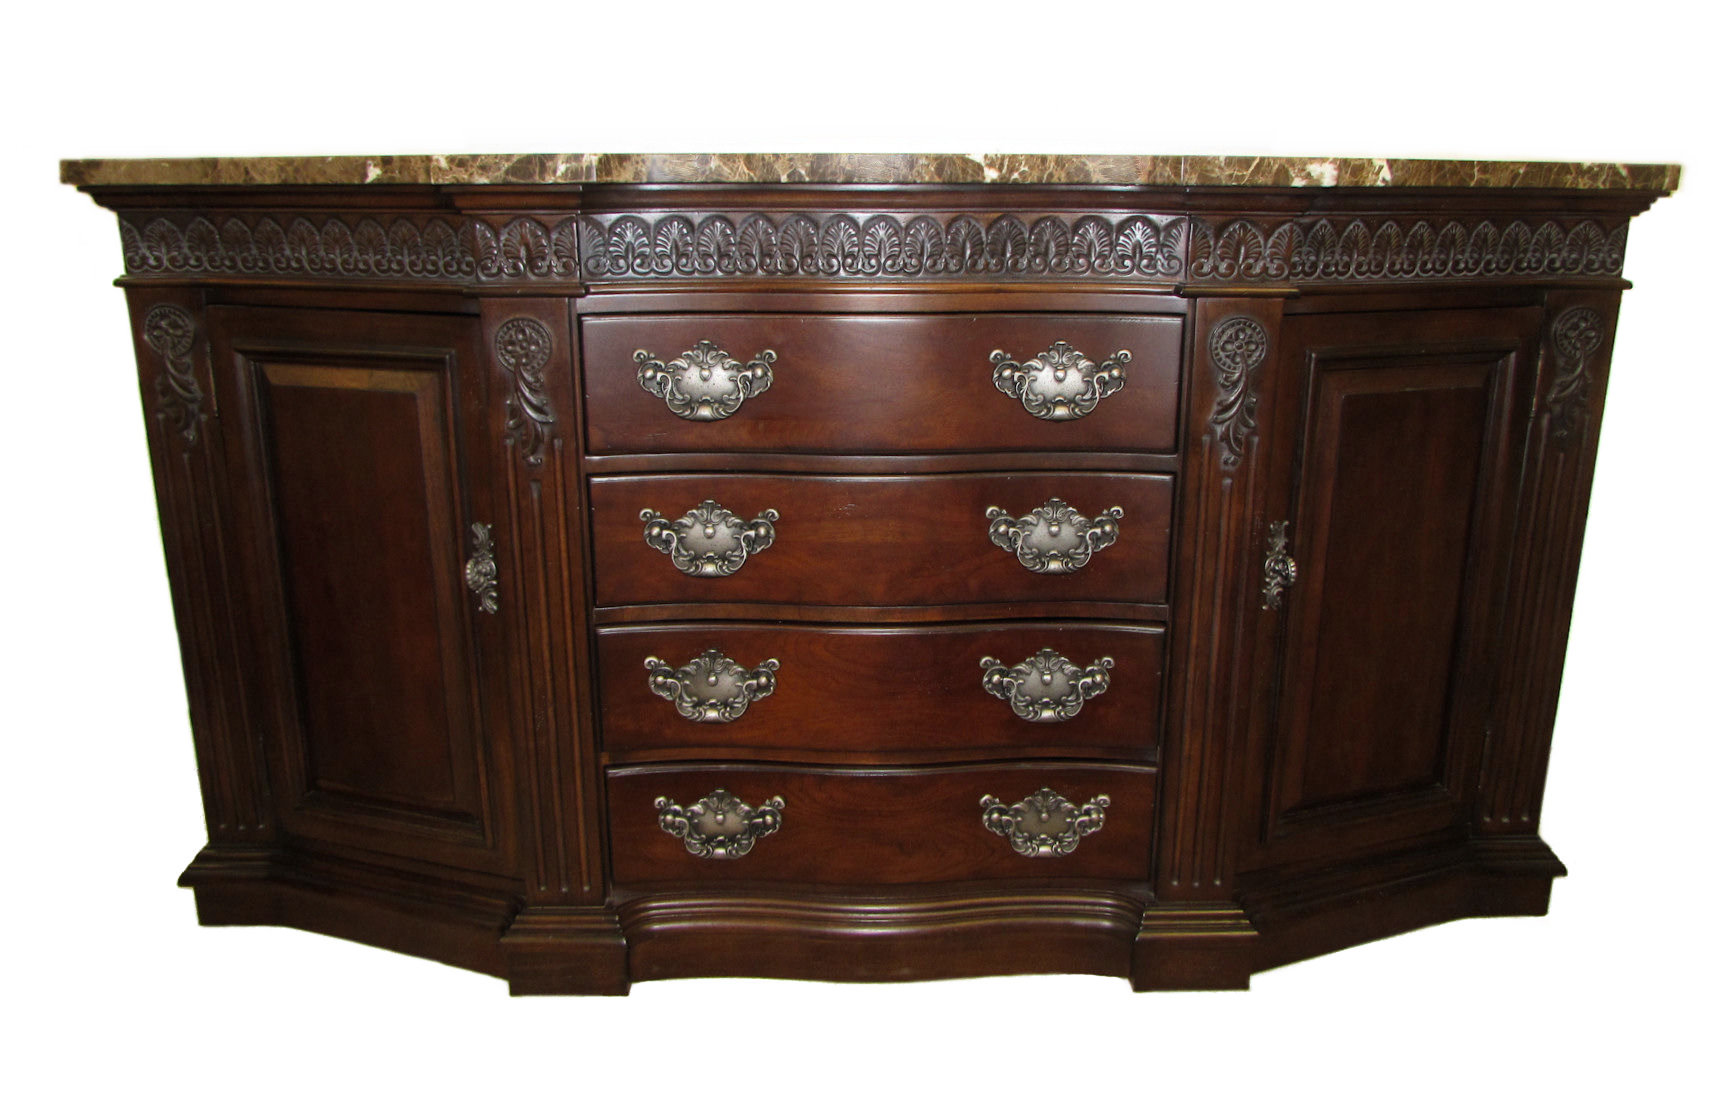 SOLD Bernhardt Marble Top Shaped Buffet or Credenza